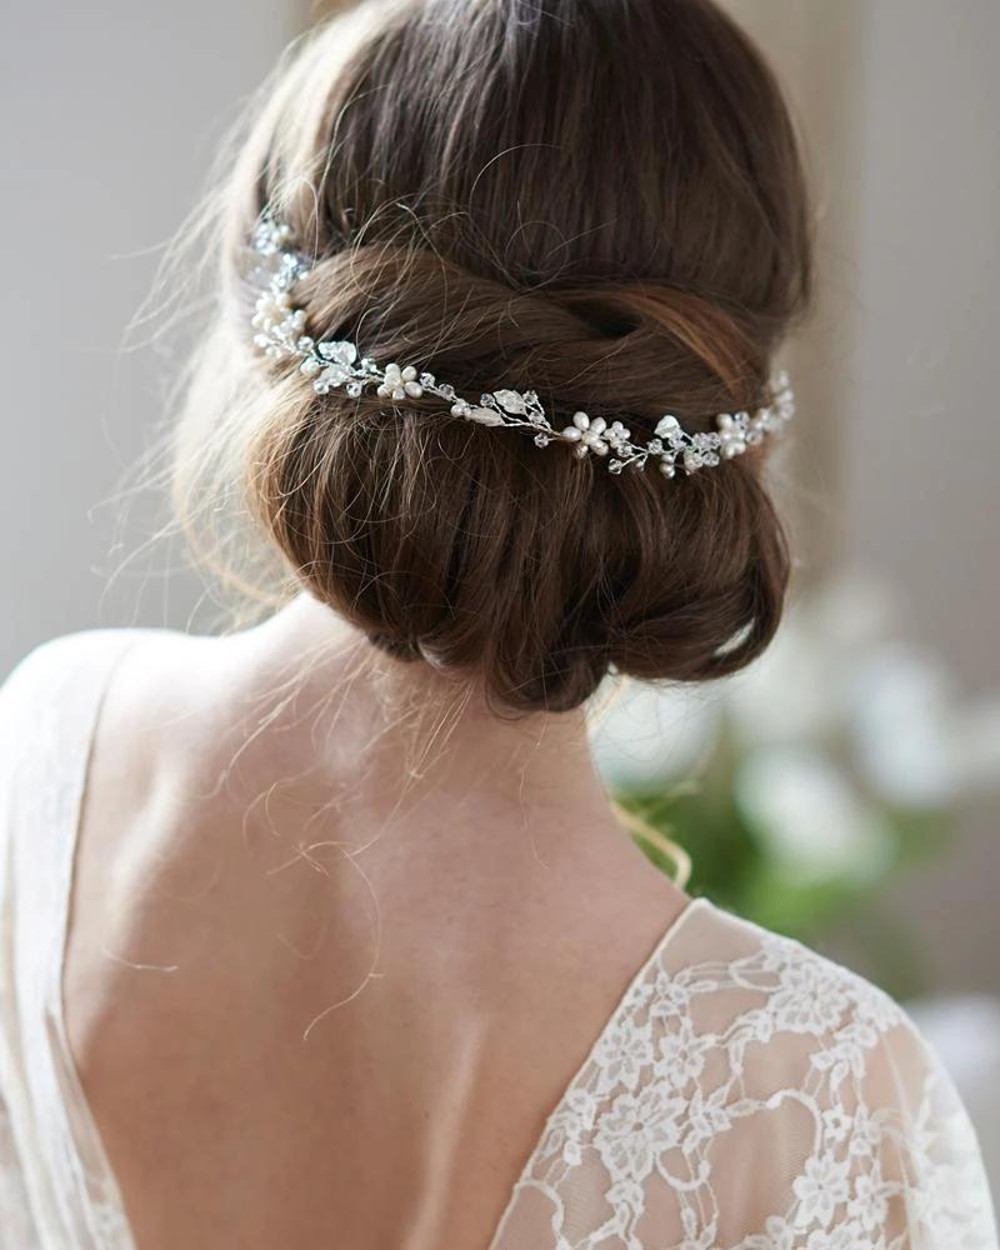 Adela_Bridal floral Halo Headband hair vine with pearls and crystals